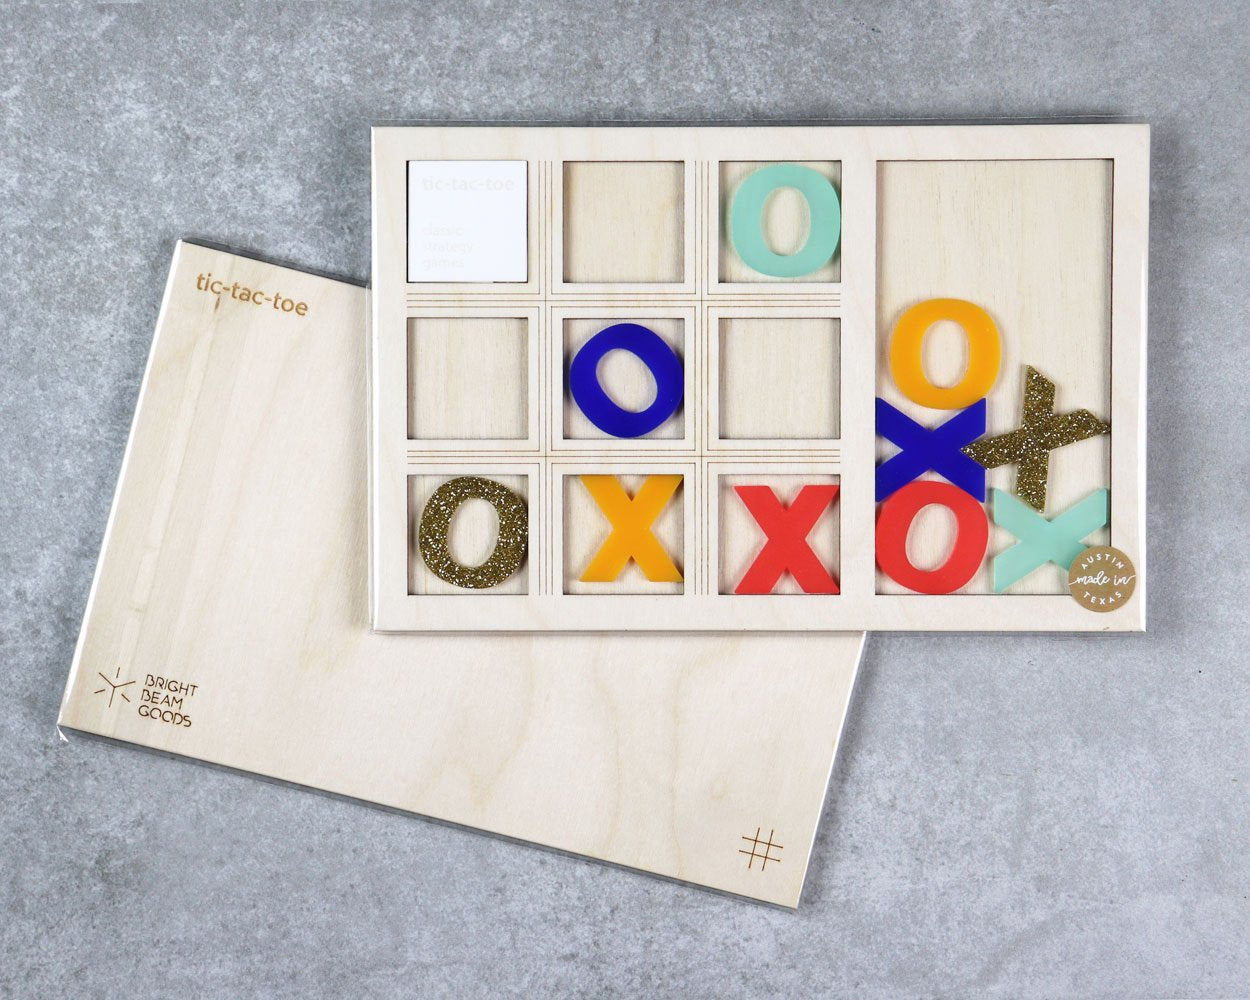 Summit tic-tac-toe game in packaging